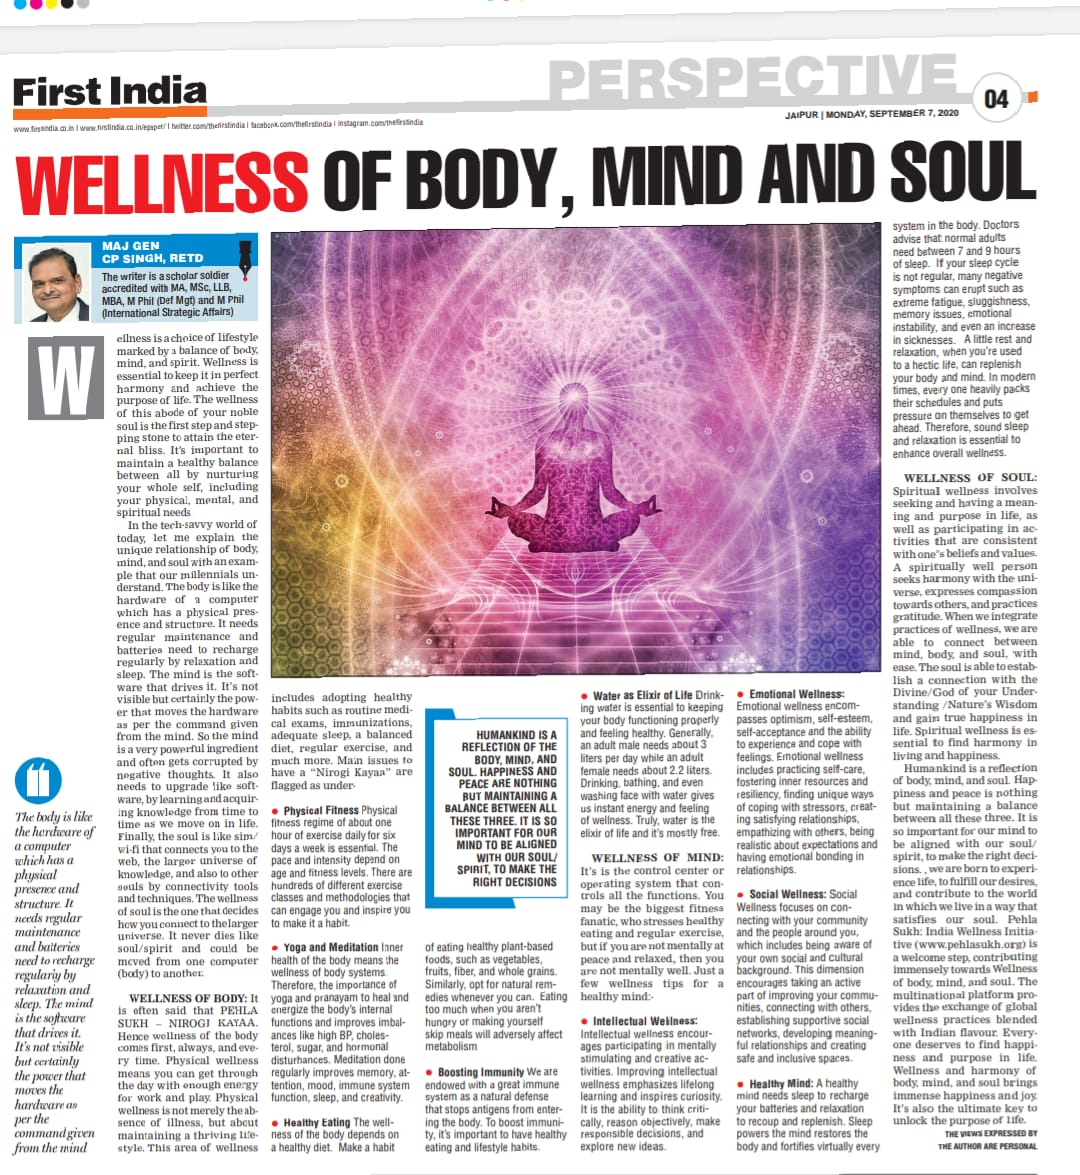 Wellness of Body, Mind and Soul